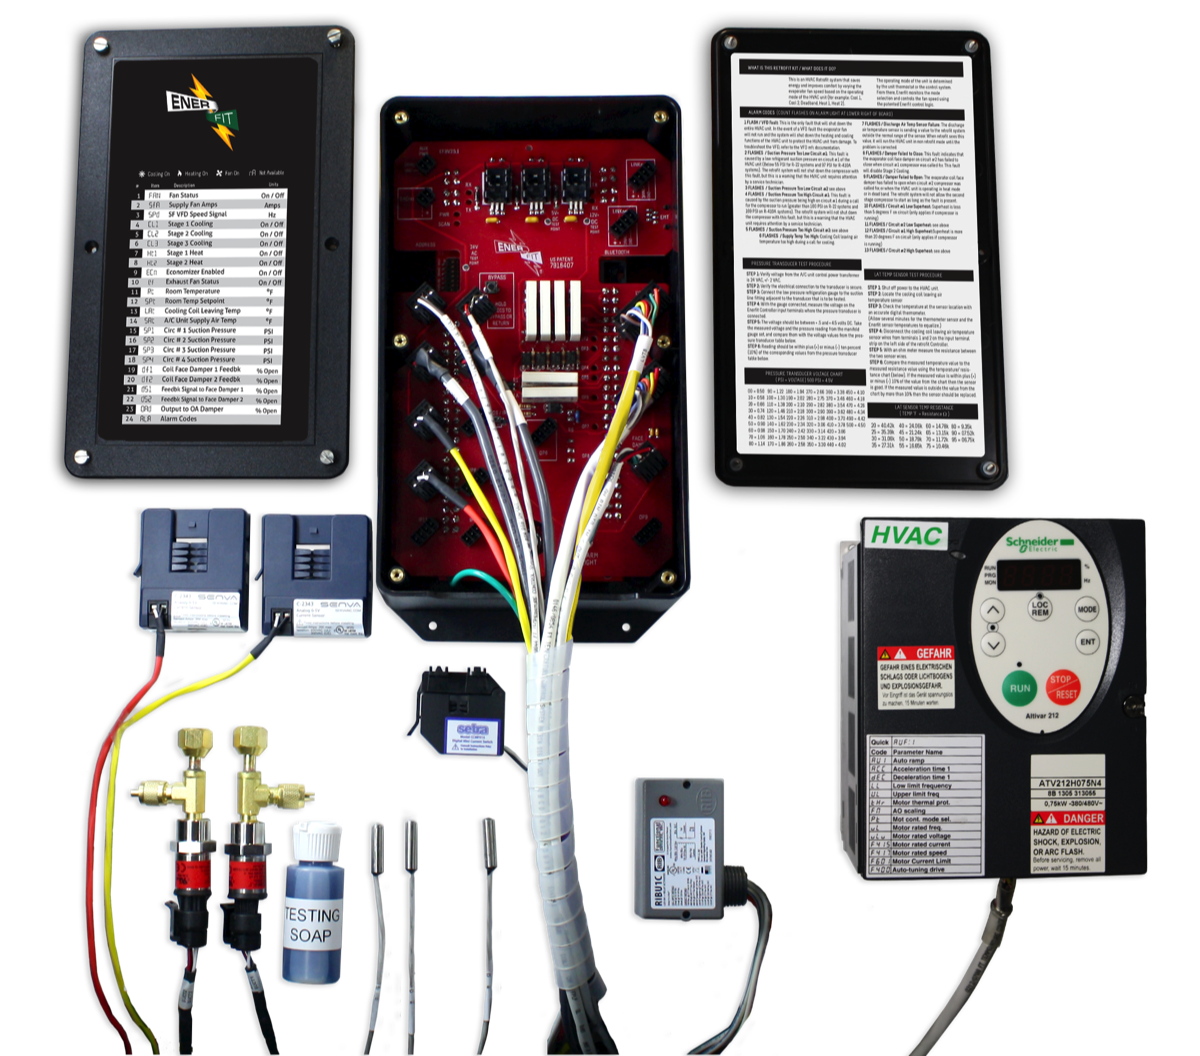 Enerfit The Engineering Variable Frequency Drive Vfd Schematic Symbol Always Includes An Advanced Controller A And Set Of Precision Sensors Built Specifically For Unit Being